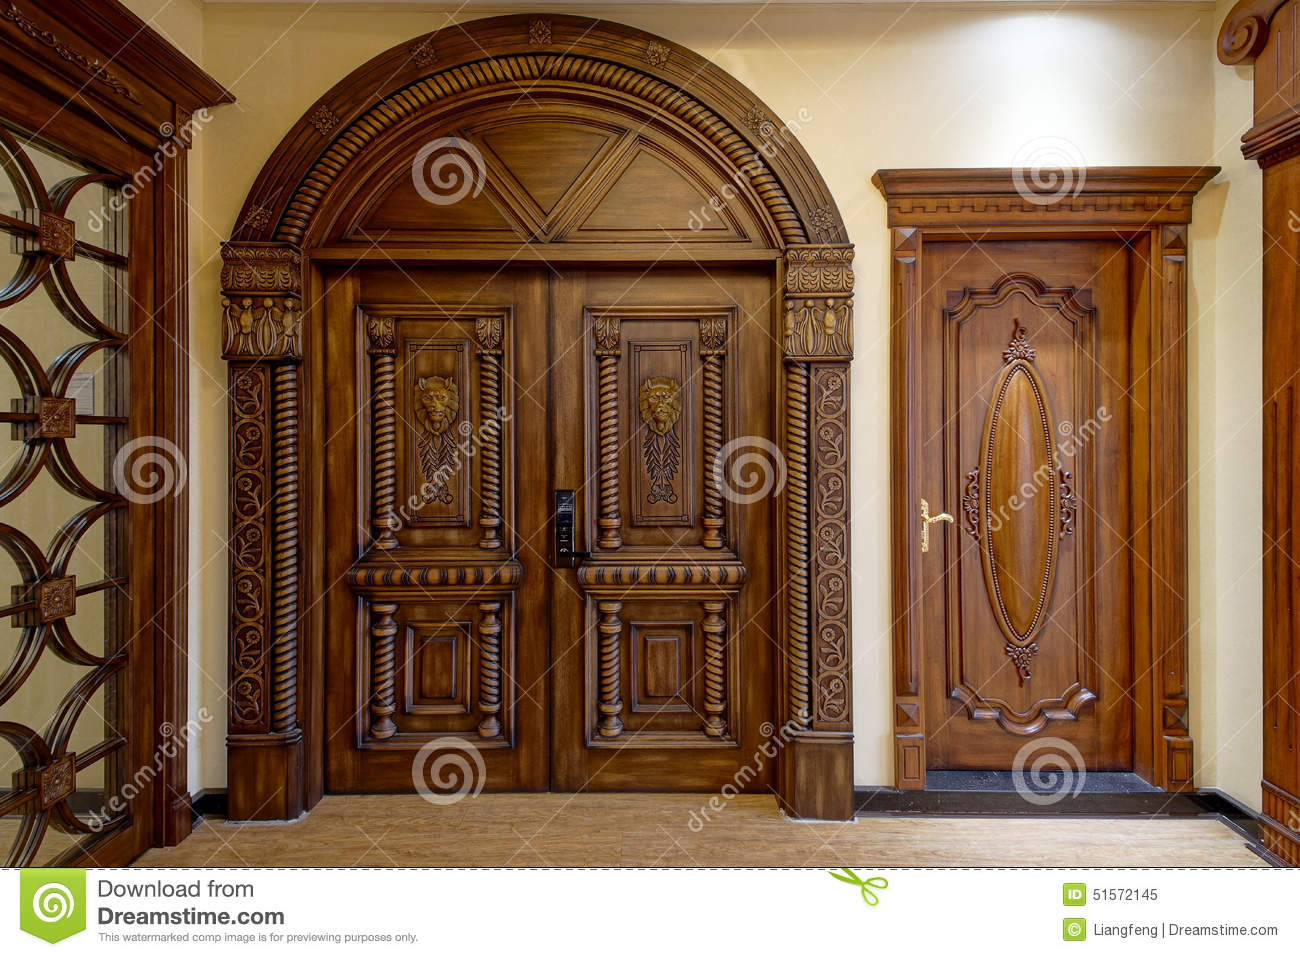 Modern family illuminative beautiful wooden door.